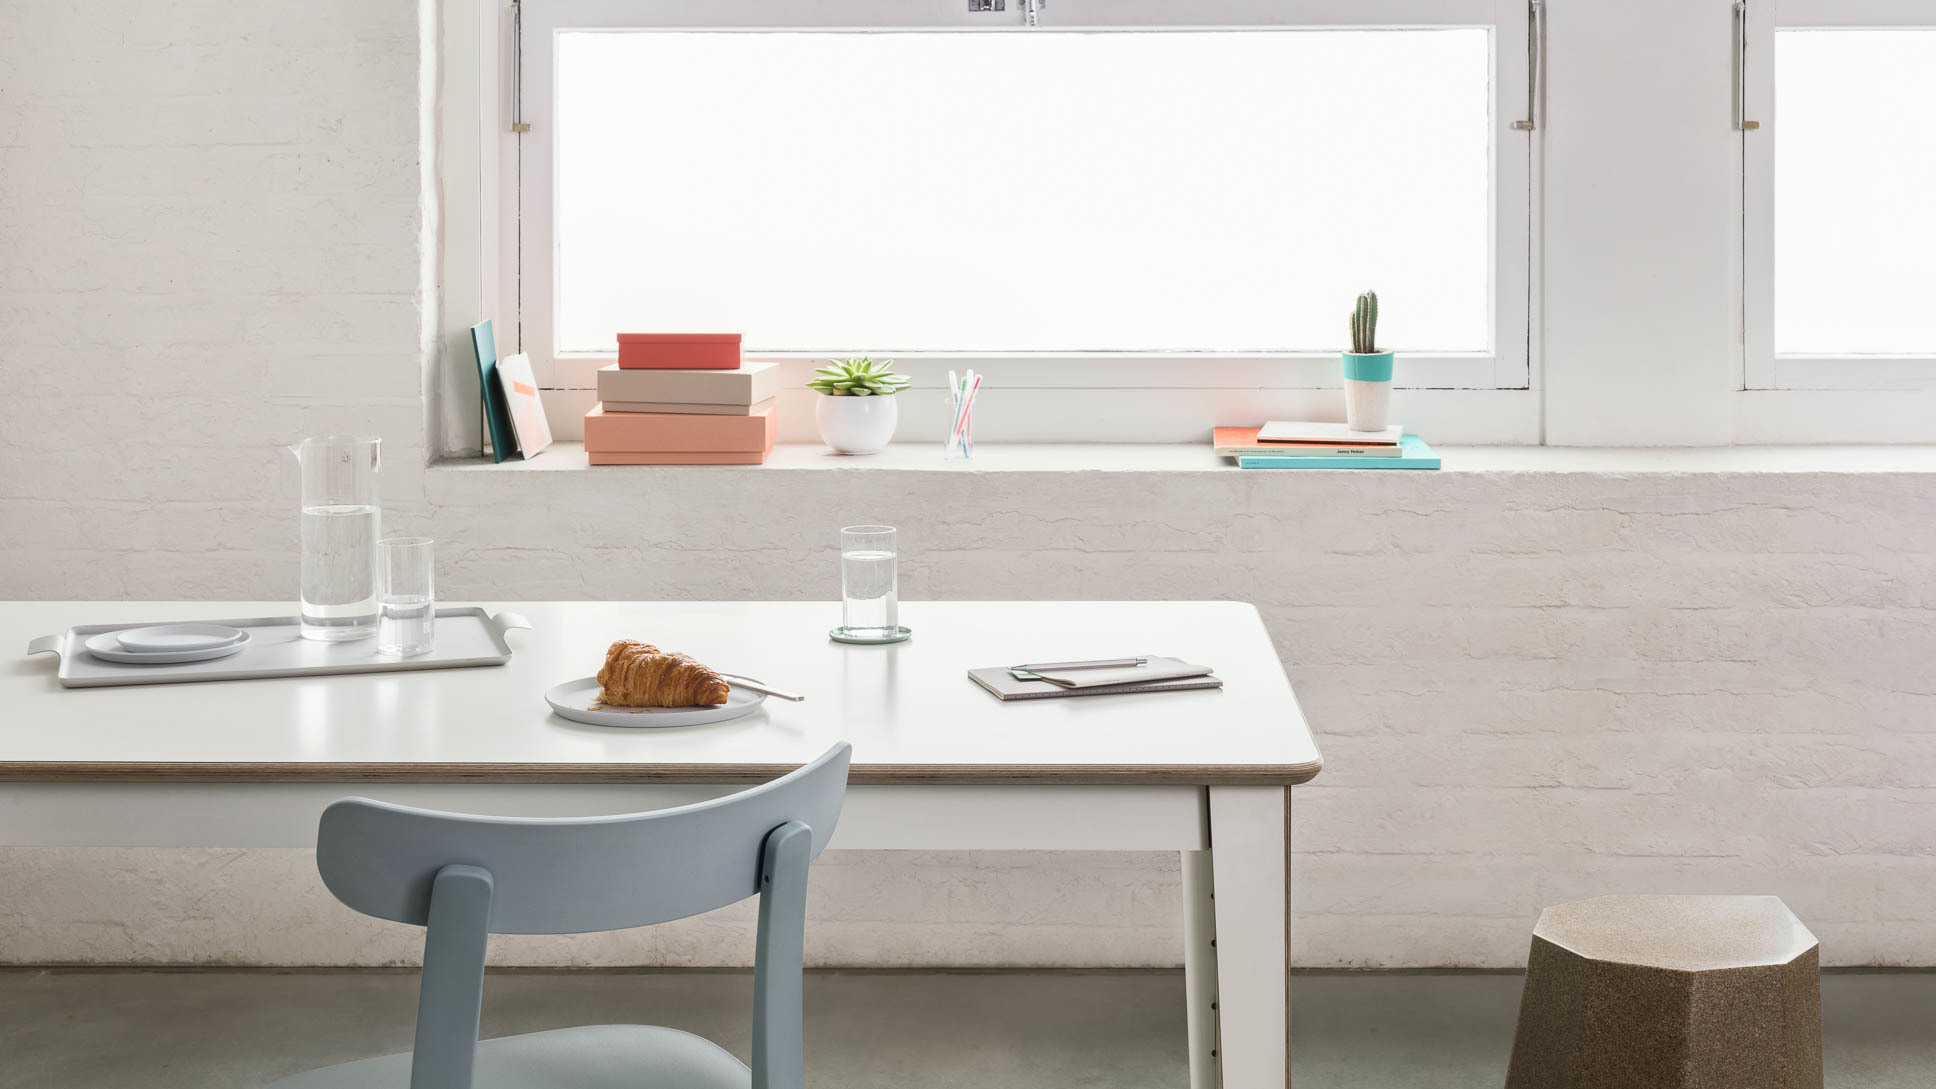 opendesk_furniture_unit-table_product-page_gallery-image-Scene2-6371-jw-Edit-V1.jpg